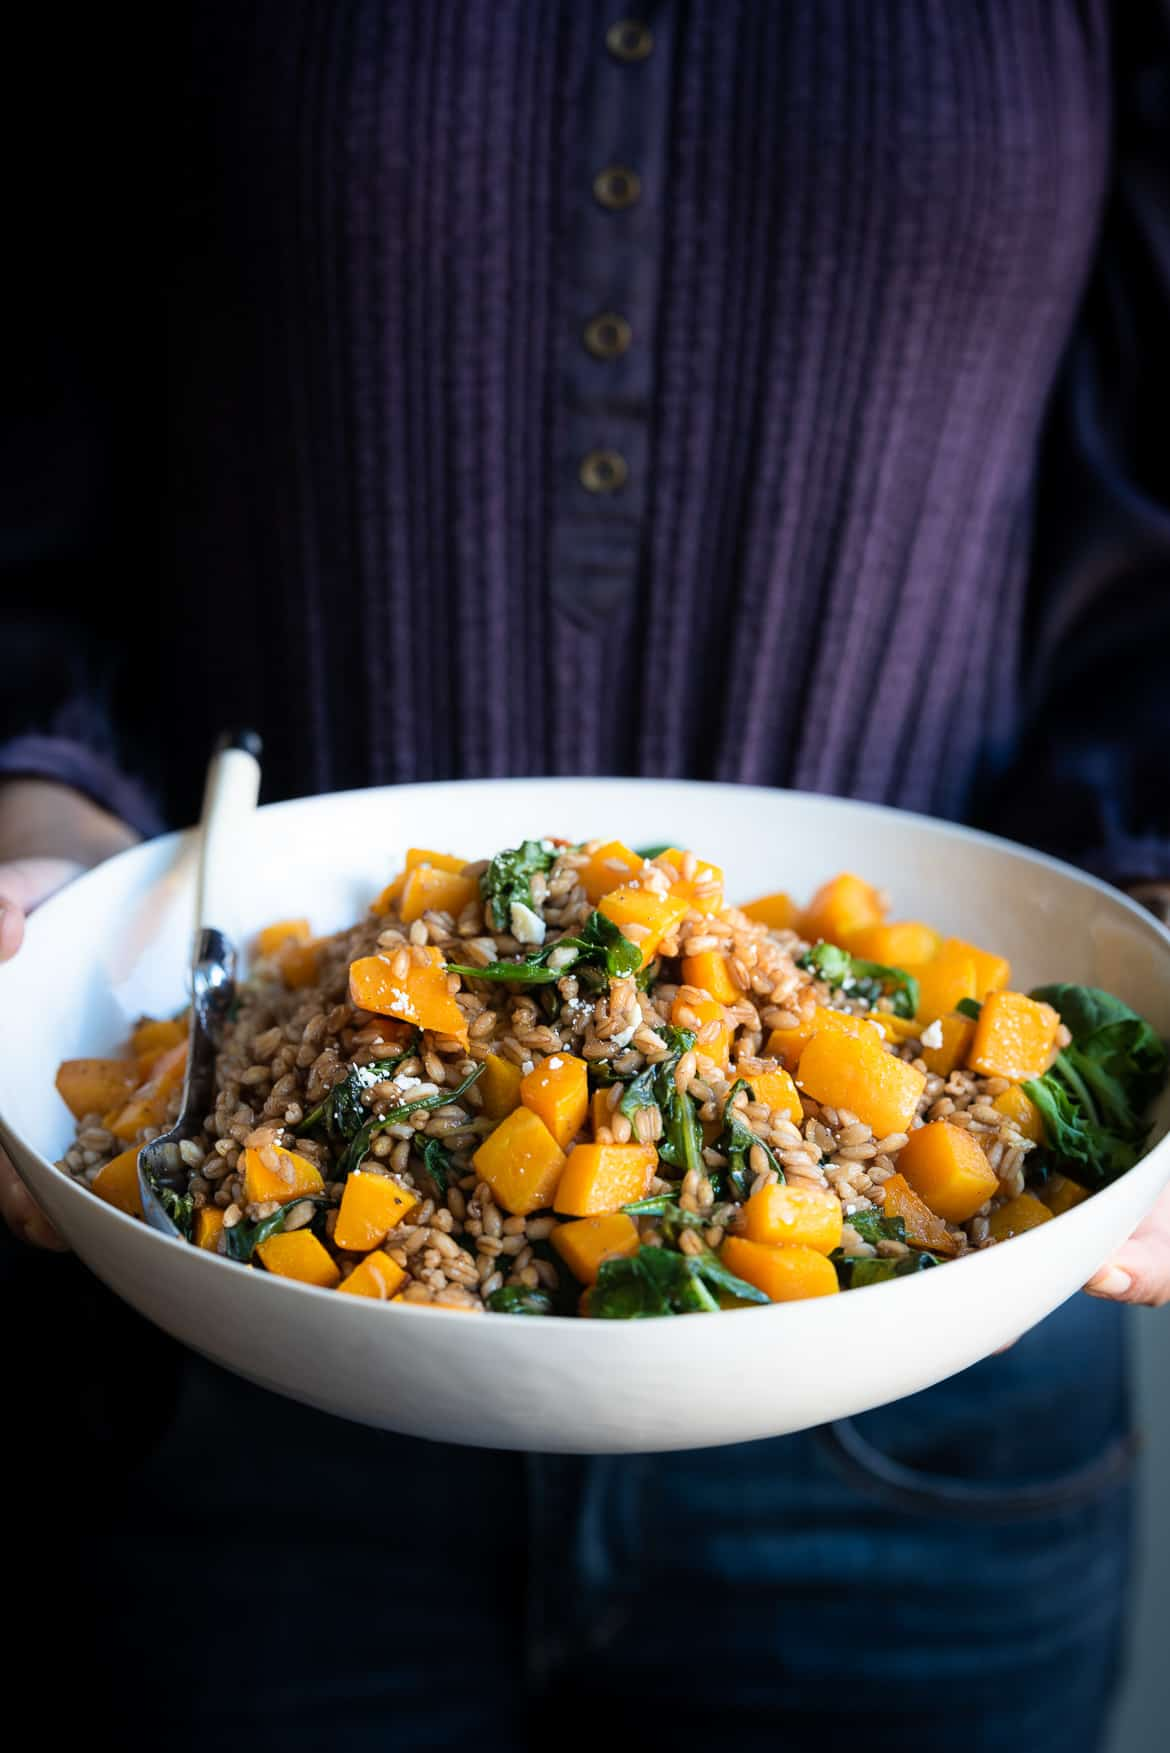 Roasted Butternut Squash Winter Salad with Kale, Farro and Cranberry Dressing in a white bowl.